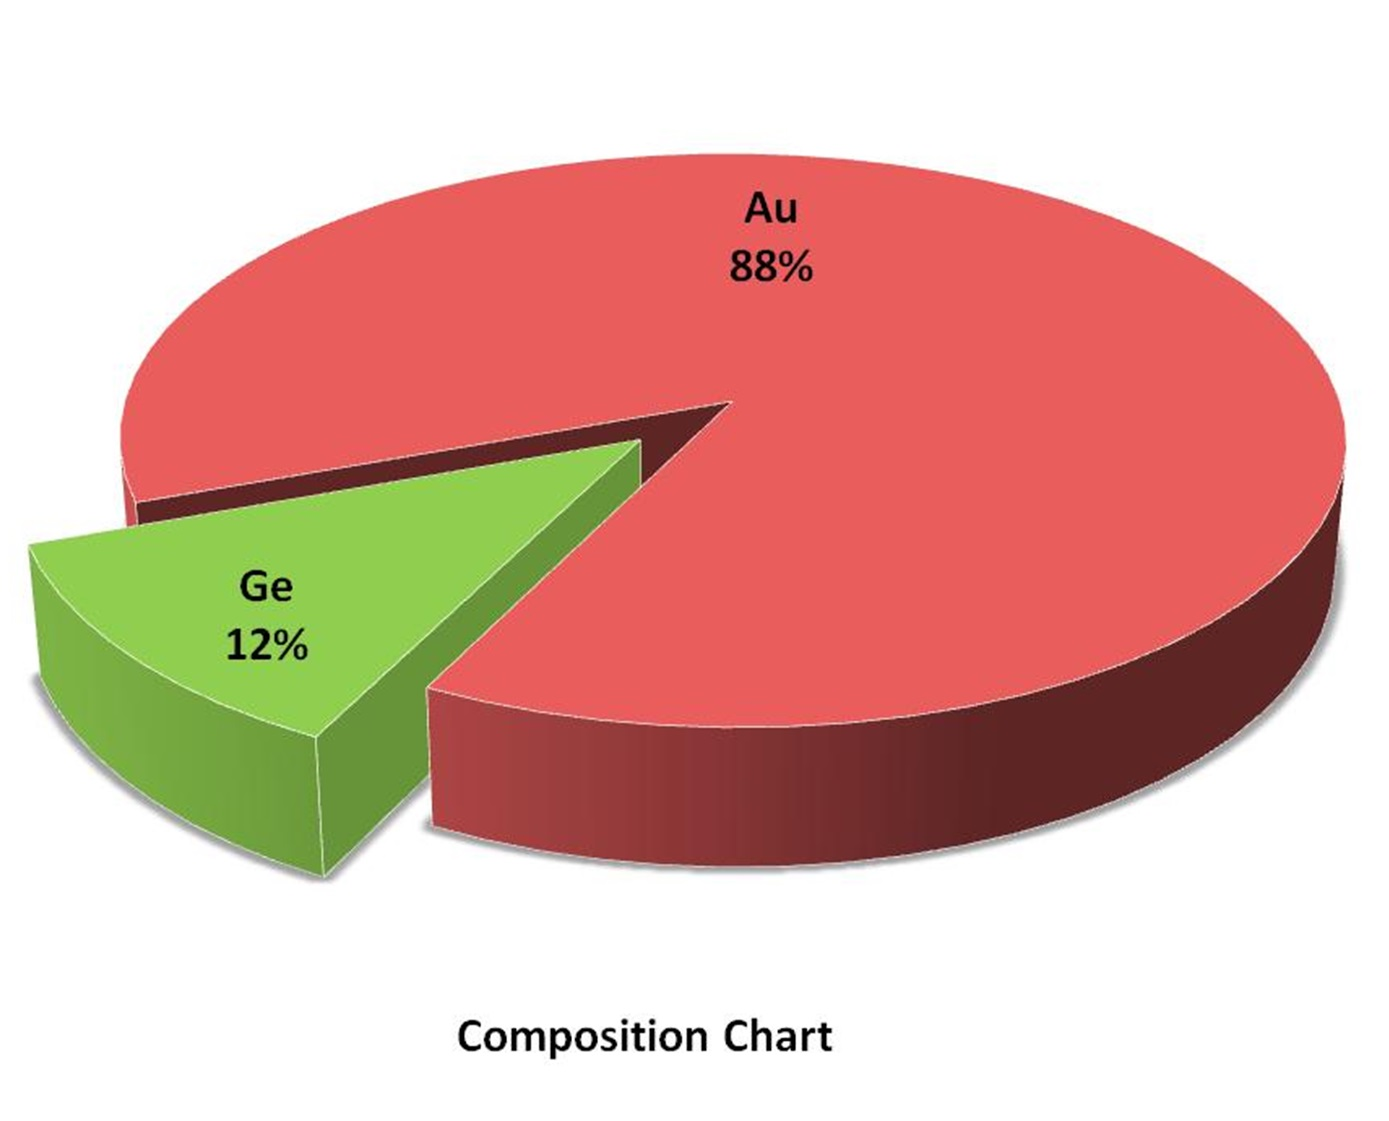 Composition Chart - Gold Germanium Alloy